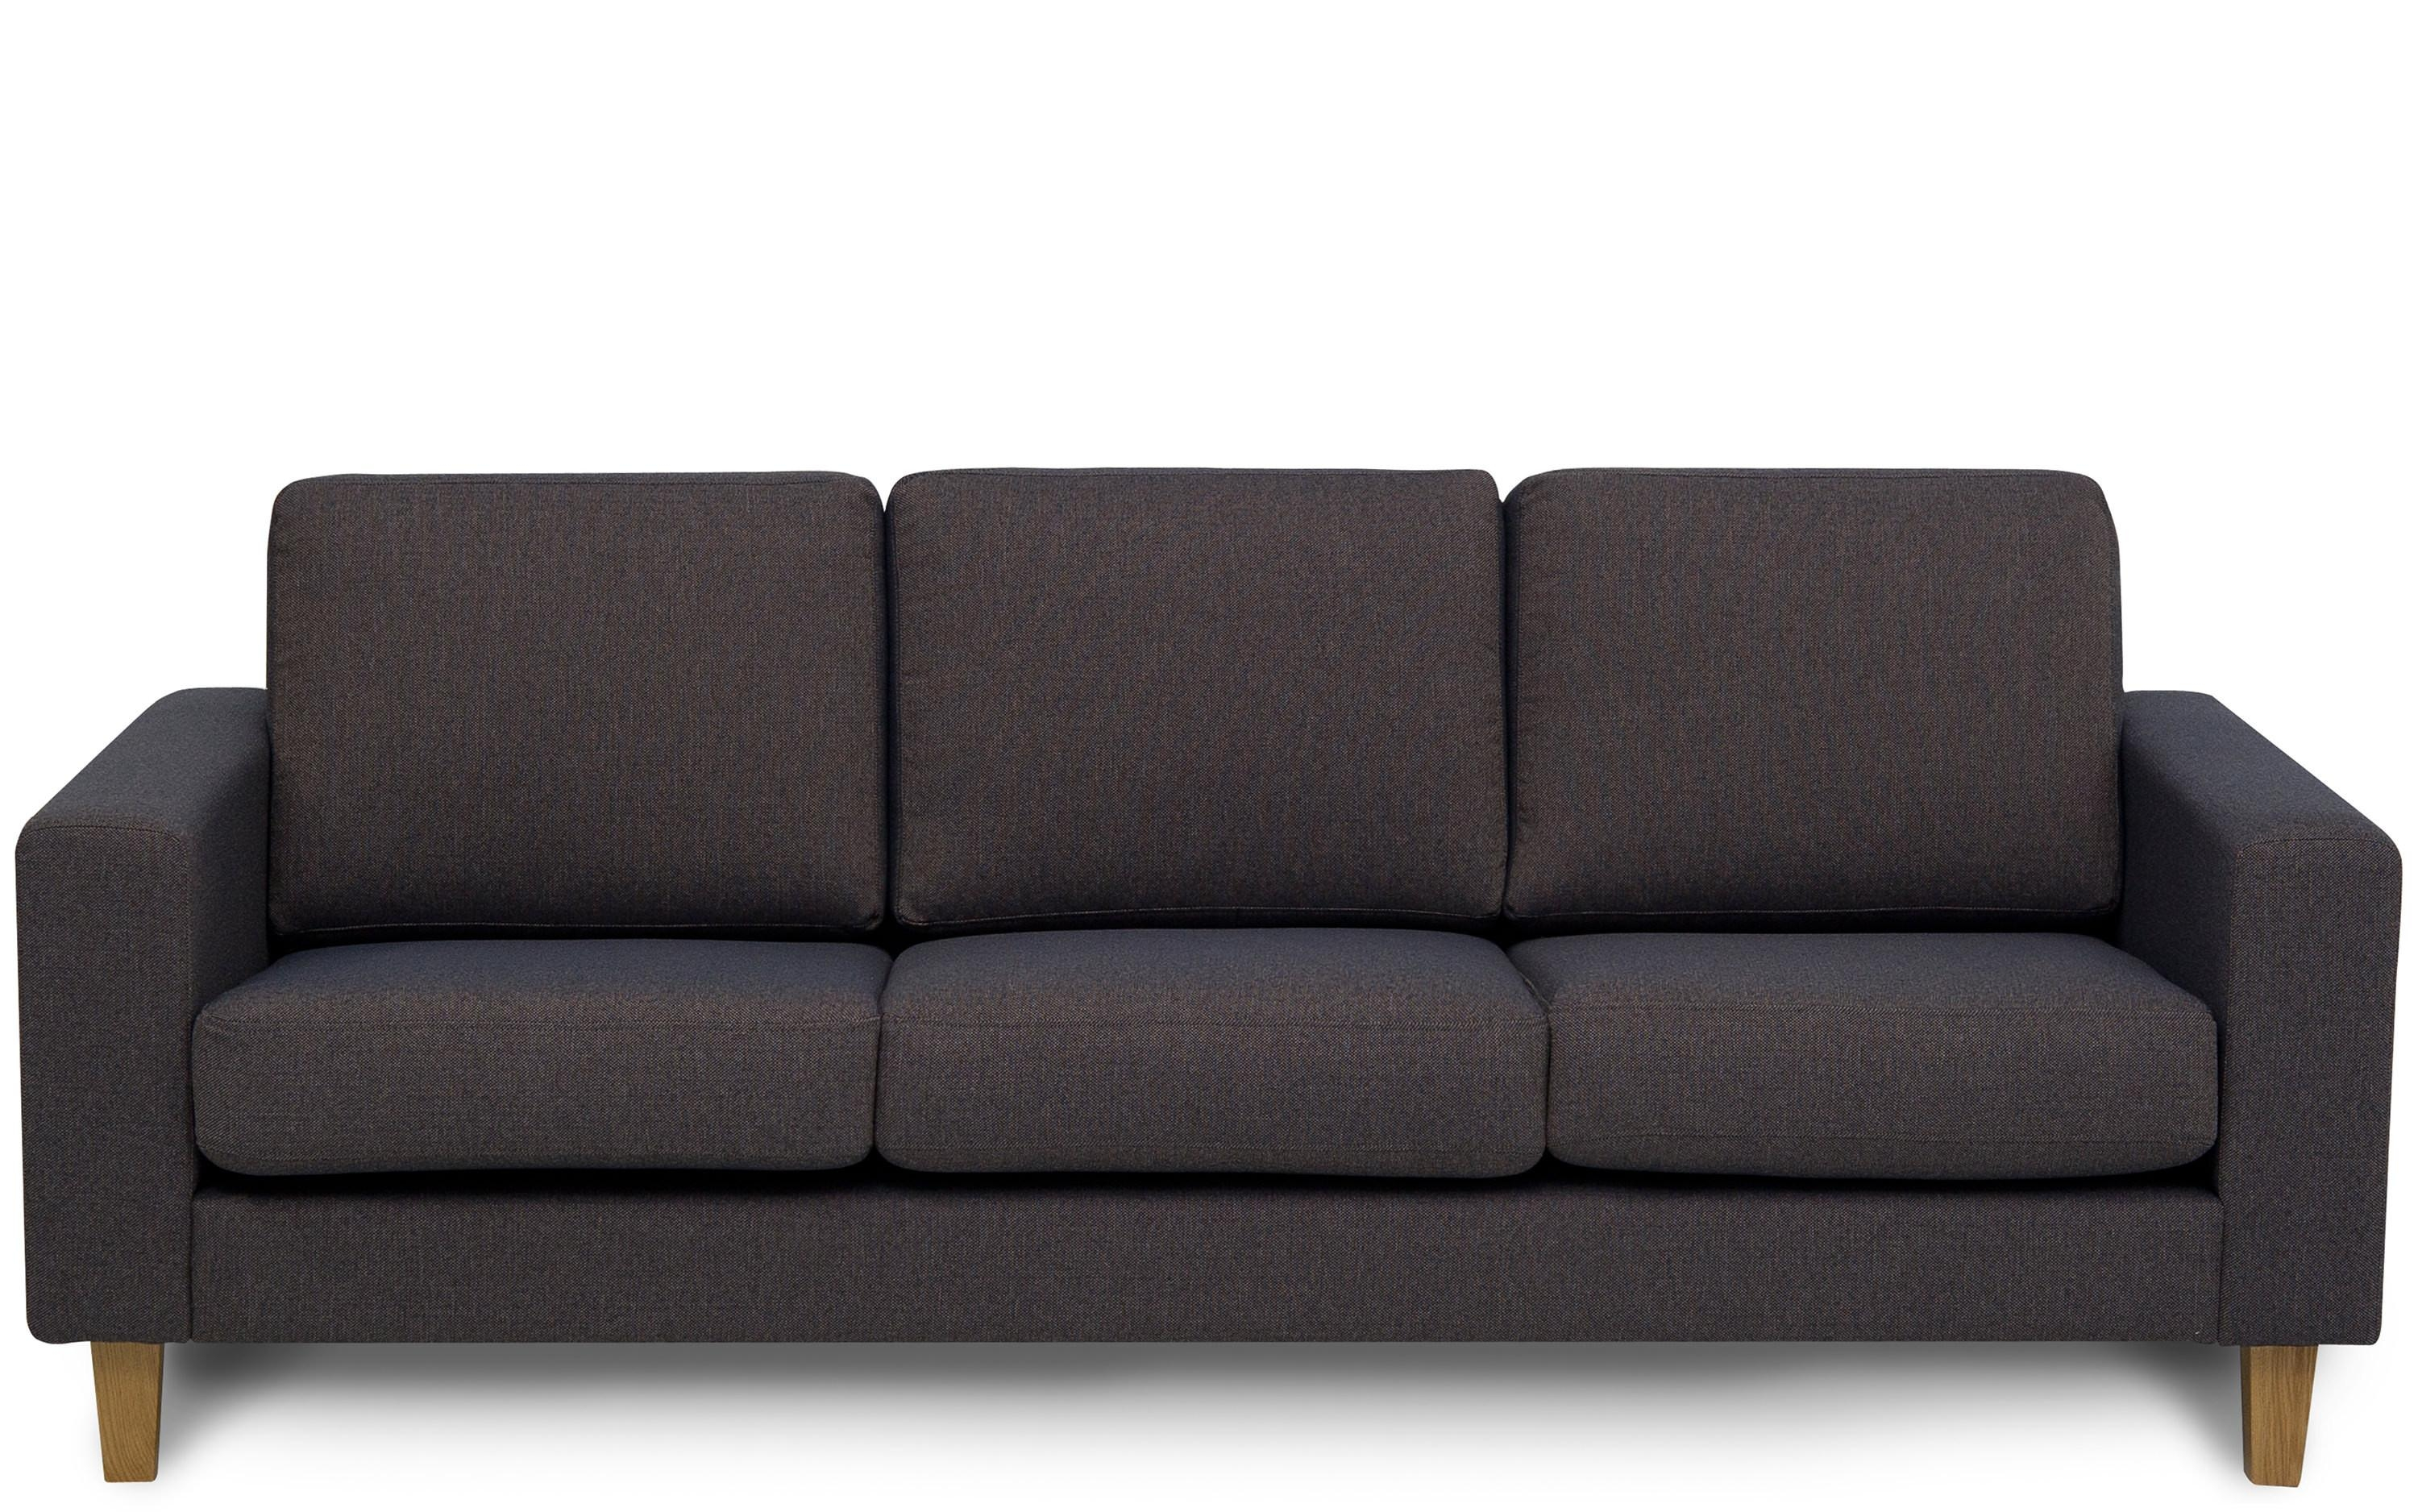 Dalton Three Seater Sofa | Designer Sofas | Buy At Kontenta Intended For Three Seater Sofas (Image 8 of 20)